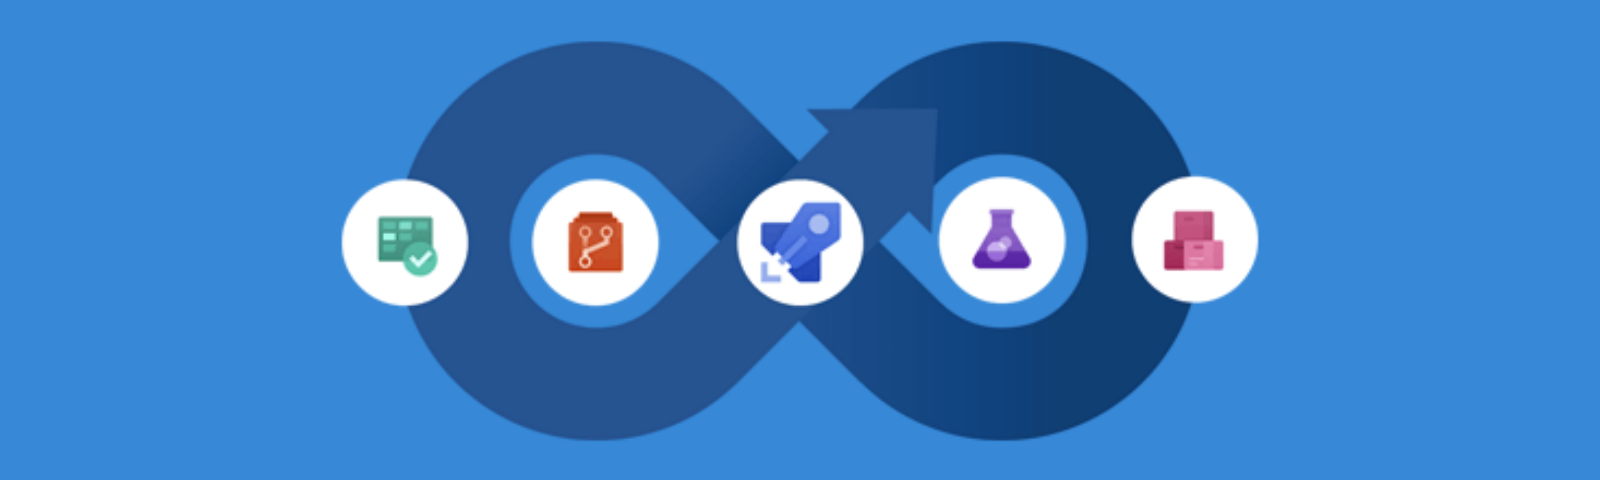 Azure DevOps Pipelines marketing image.